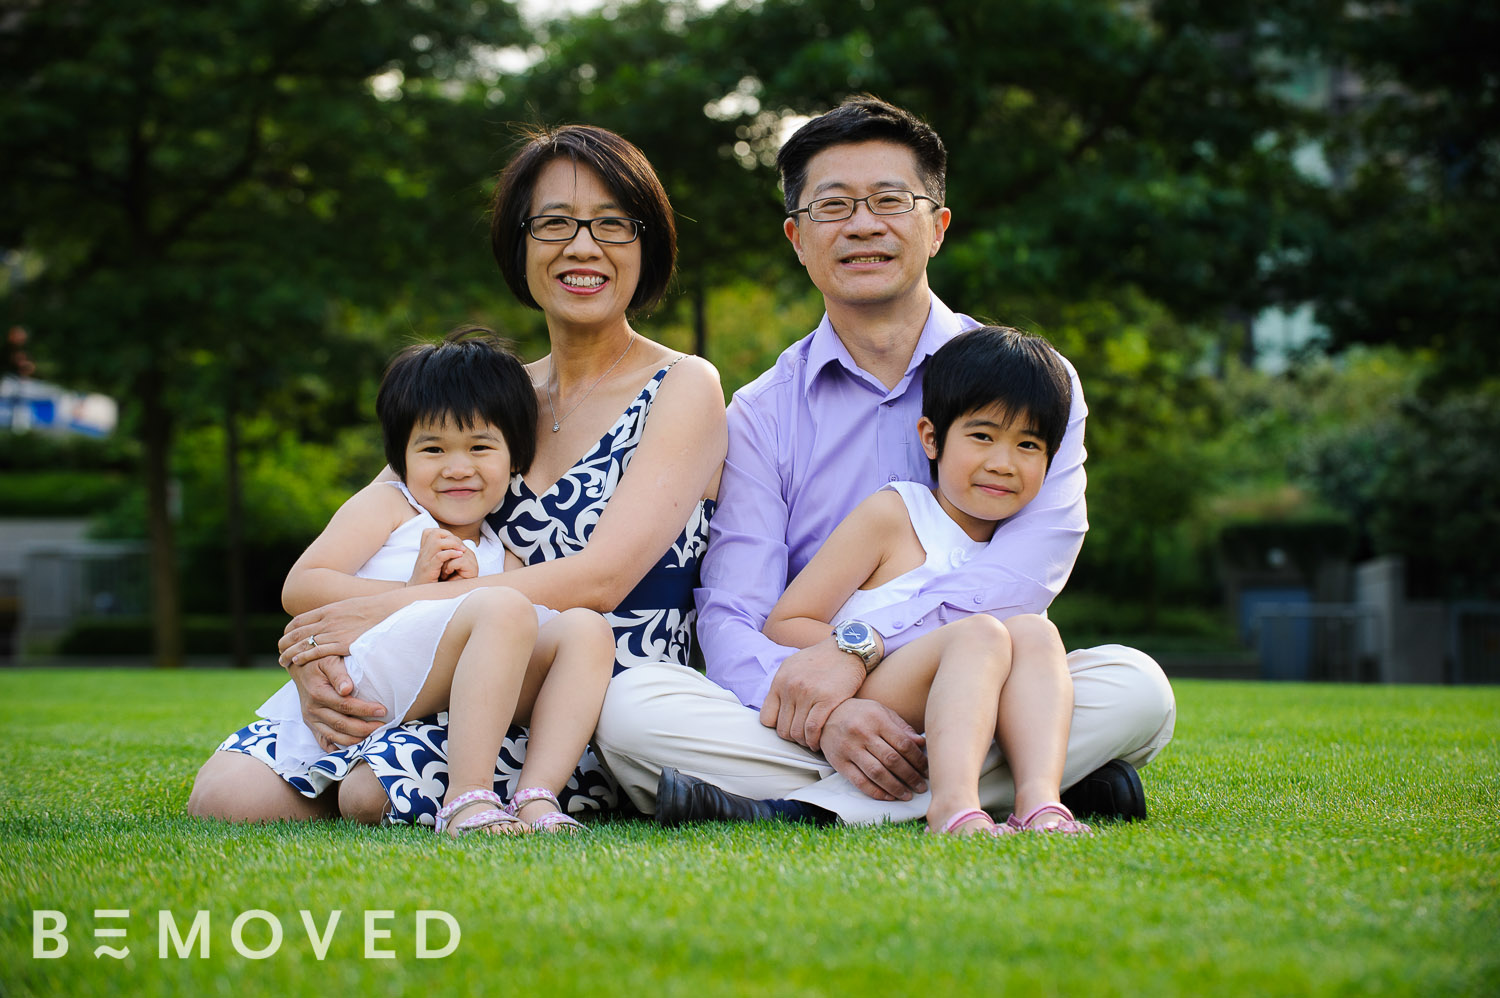 004_stanley-park-family-photography.jpg